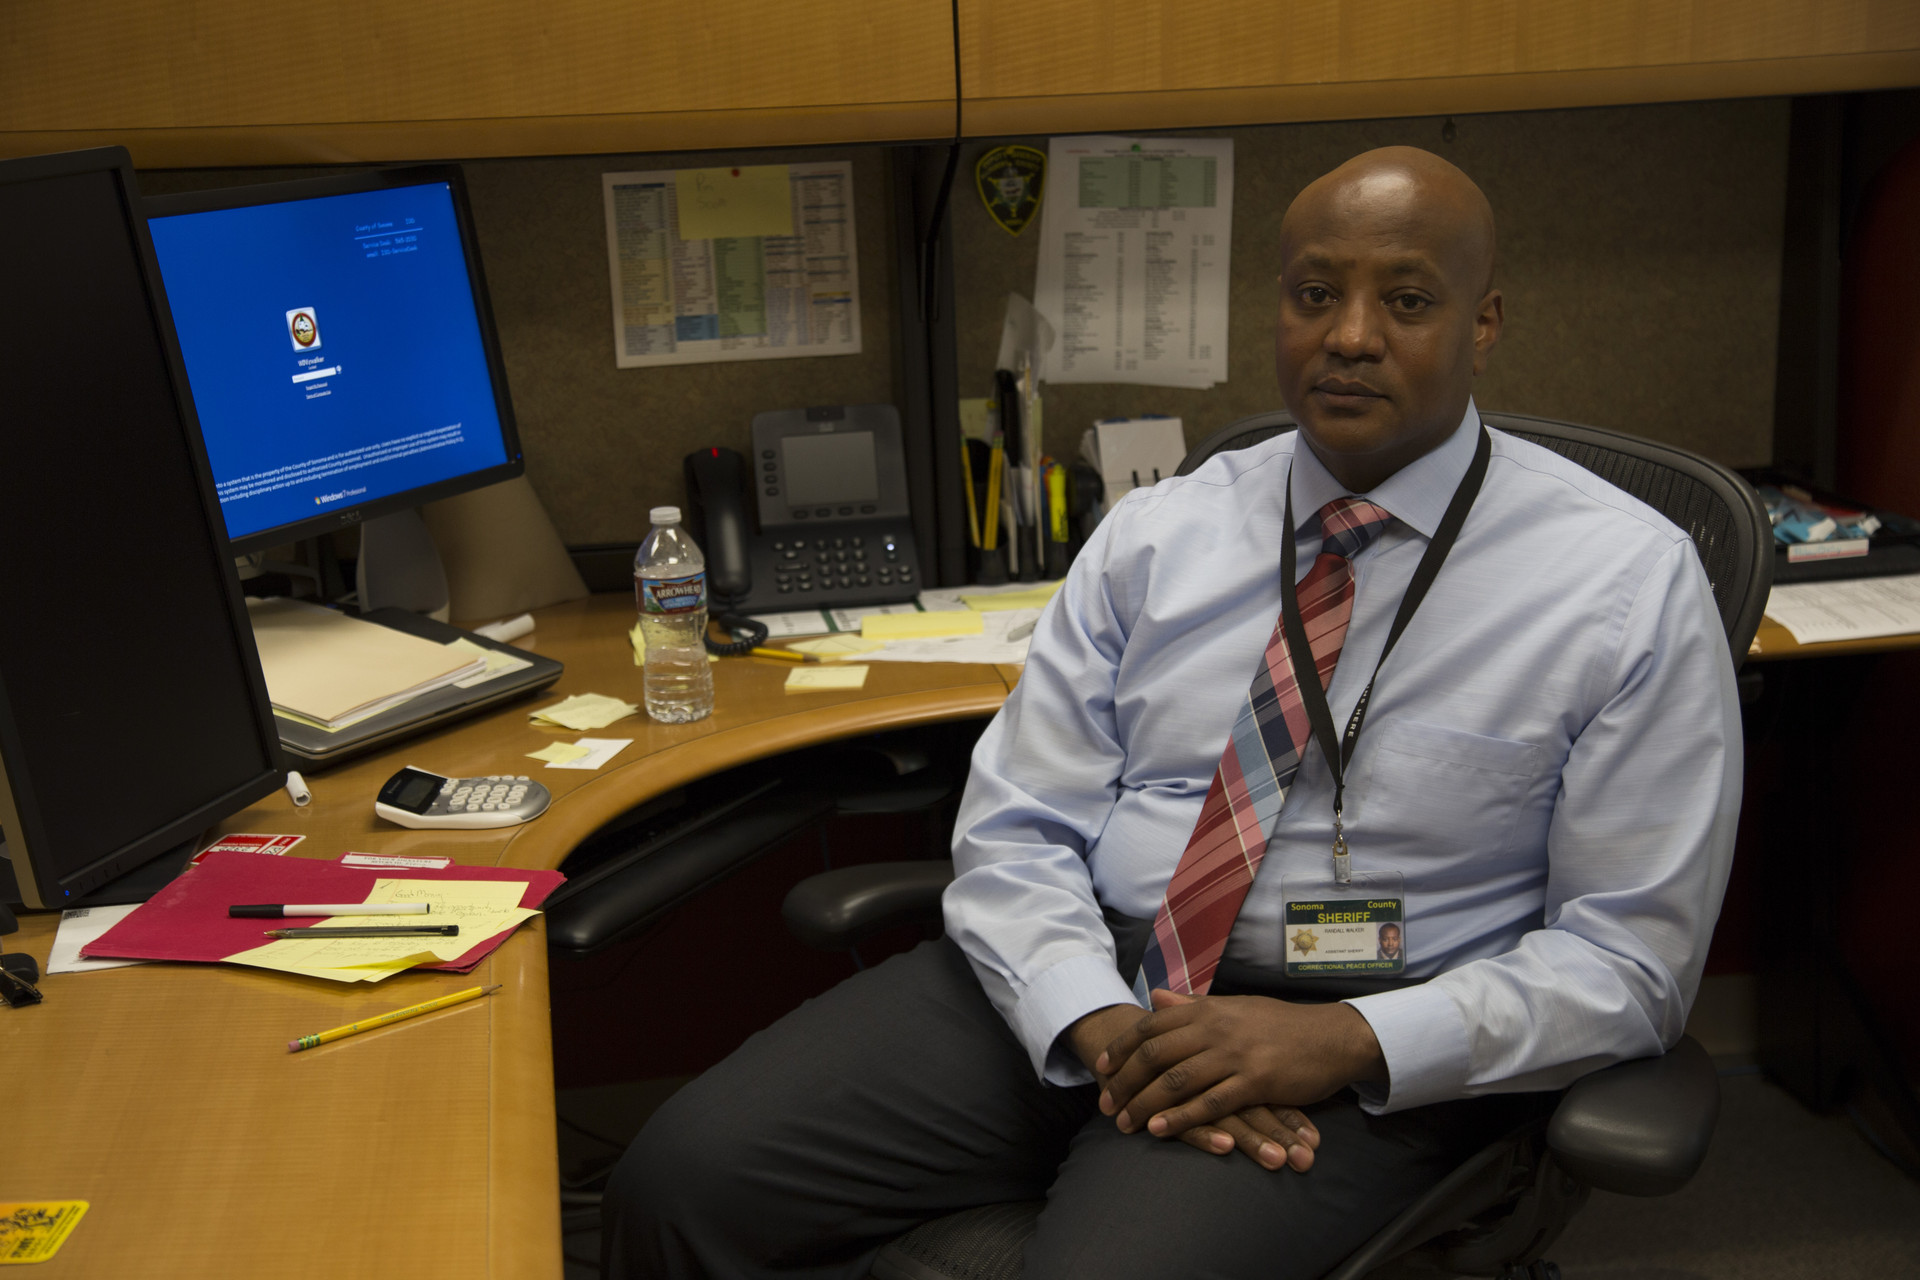 Sonoma County Assistant Sheriff Randall Walker in his office at Main Jail.